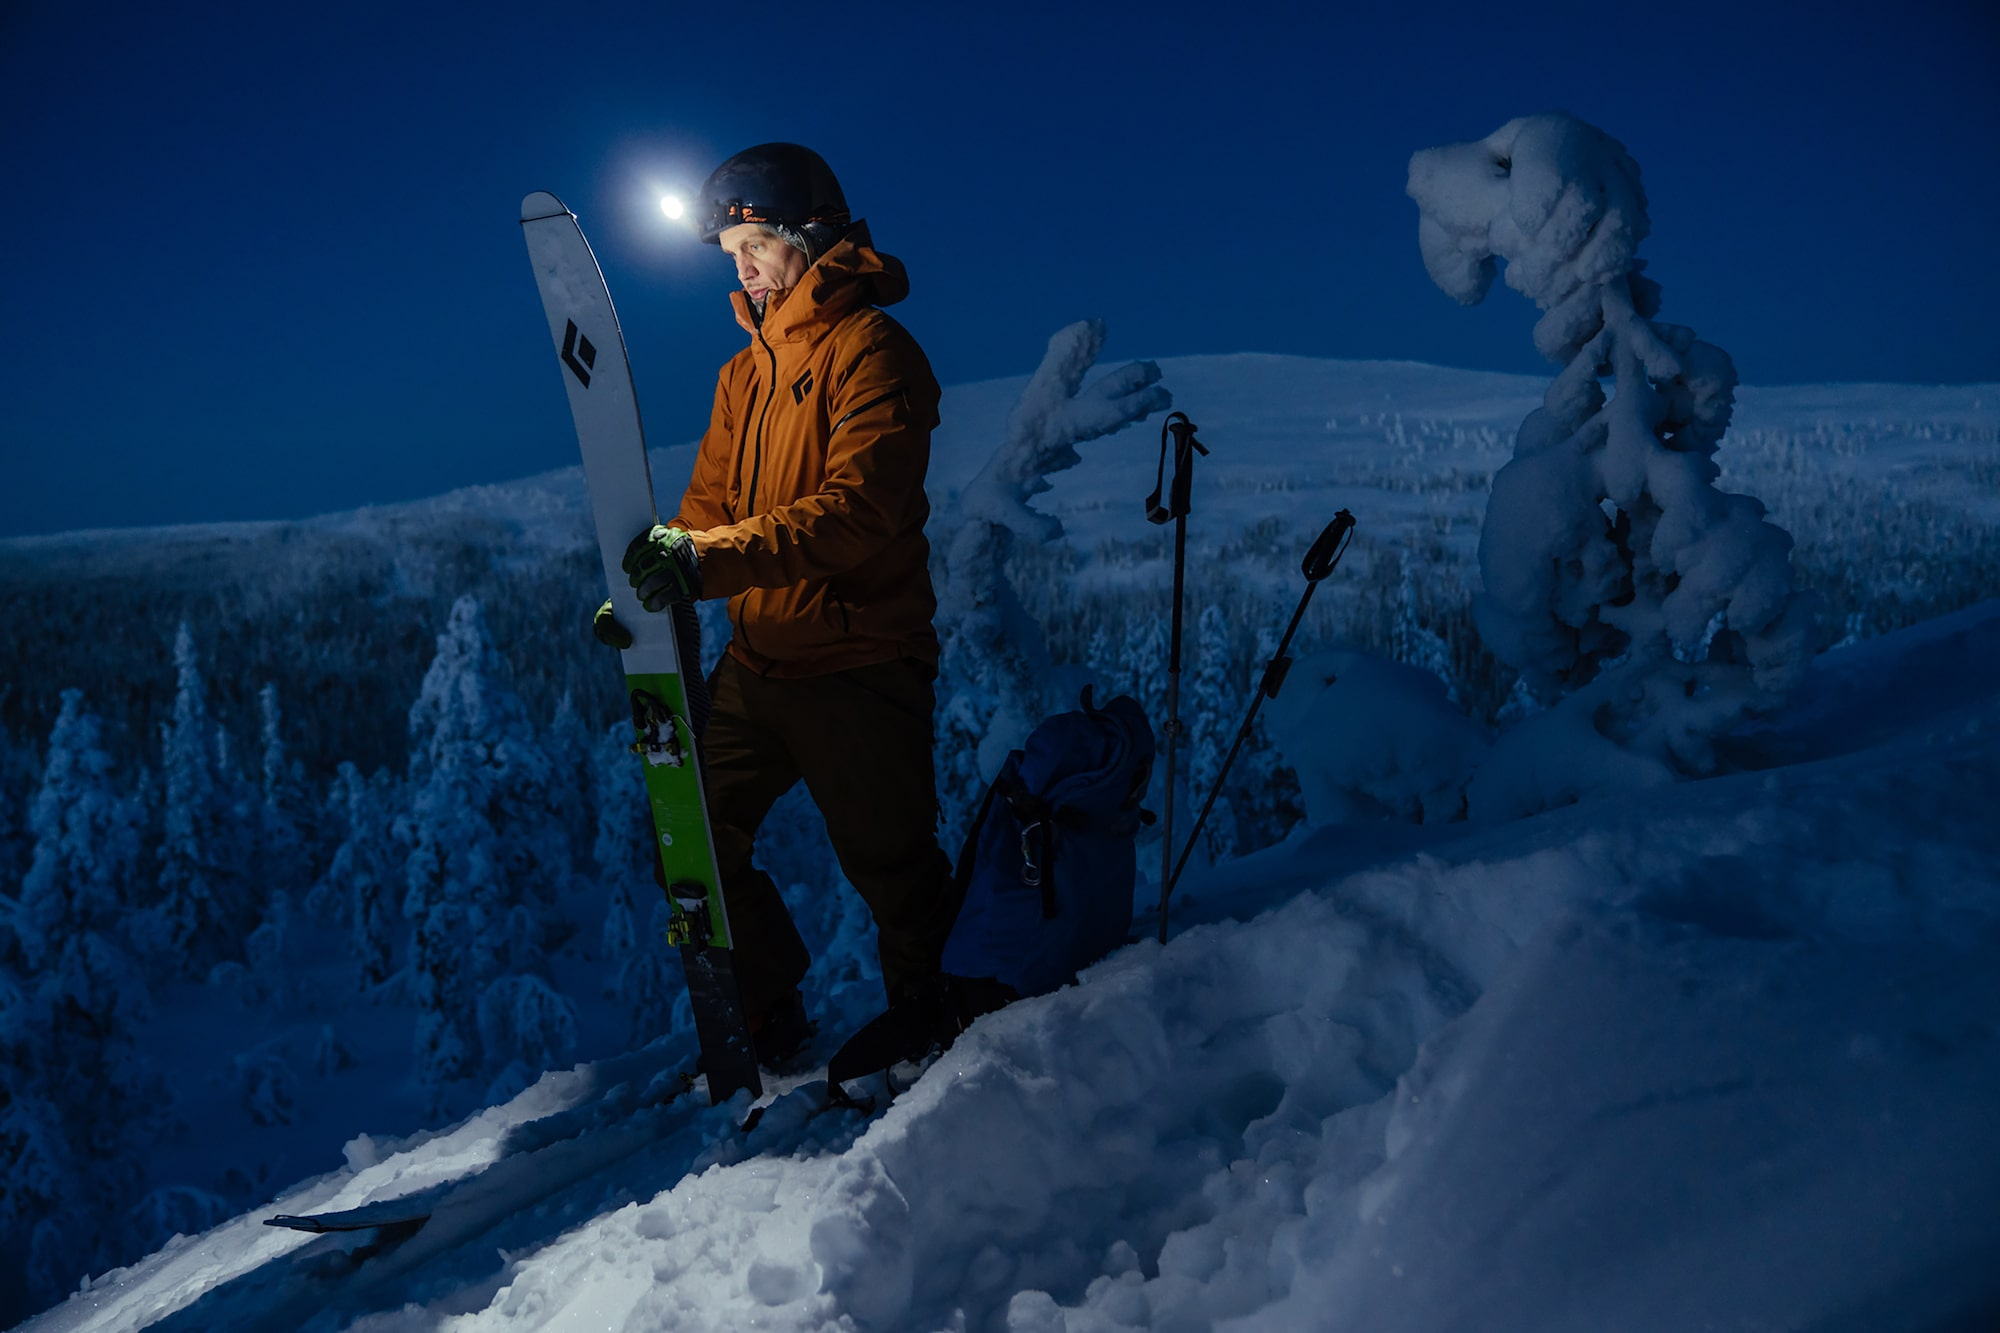 jaakko posti sony alpha 9 skieur inspectant ses skis à l'aide d'une lampe frontale